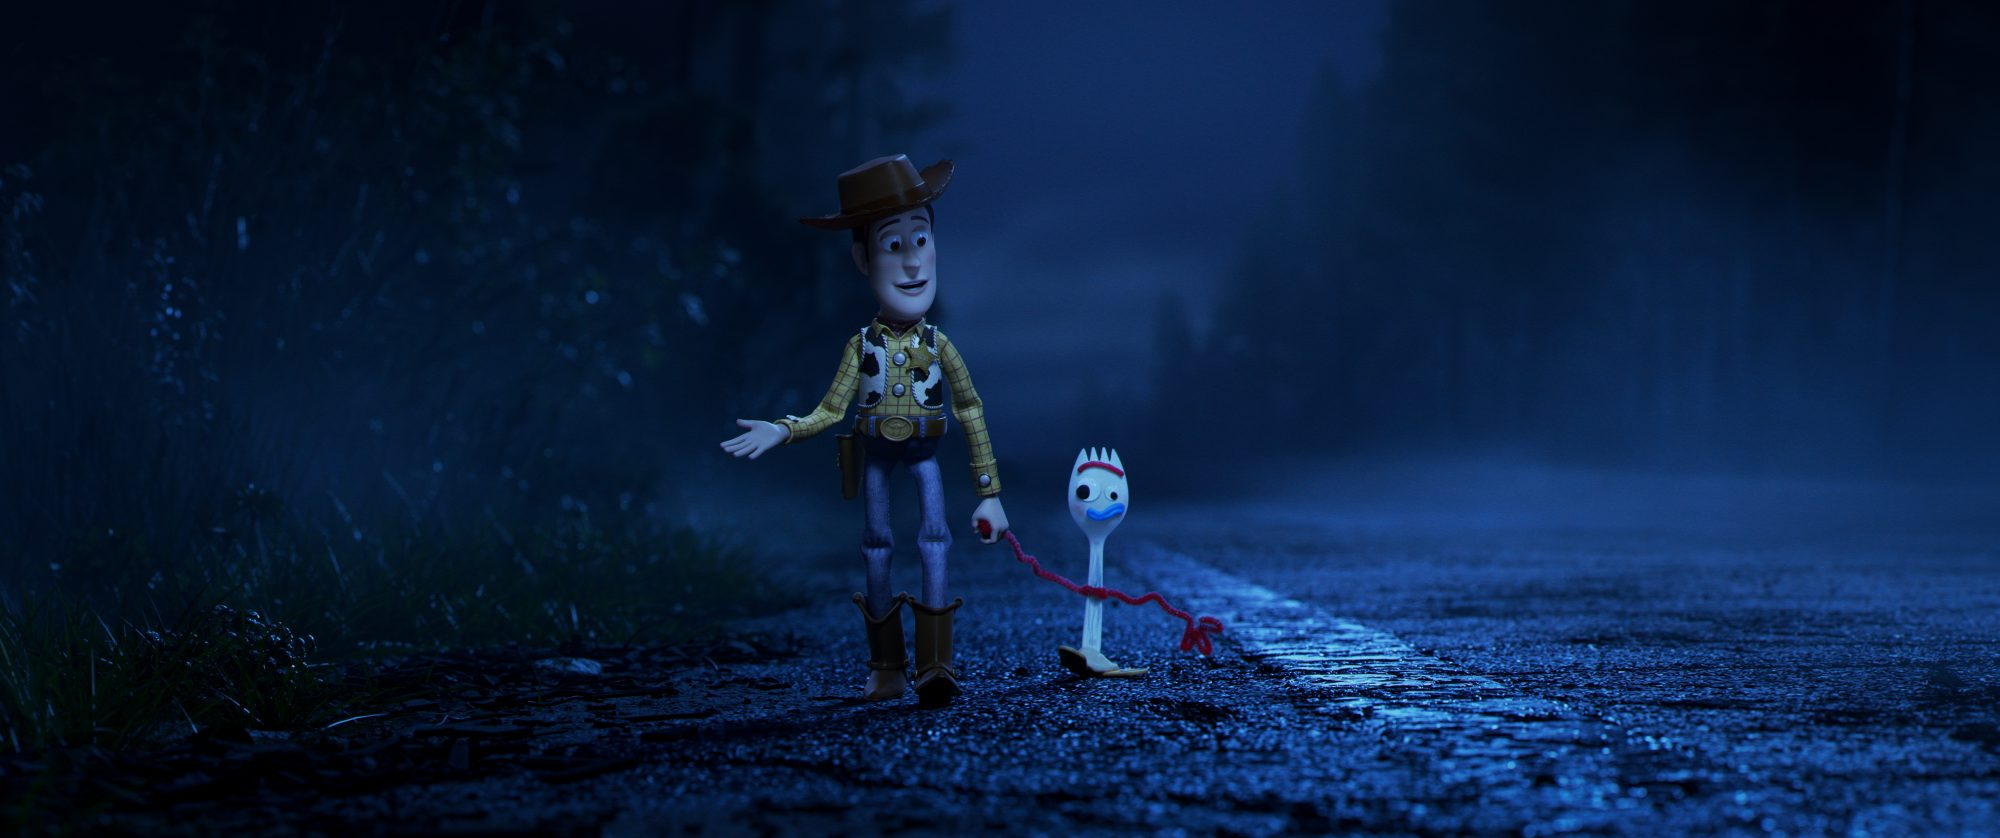 [News] TOY STORY 4 Trailer Reveals Brand New Characters